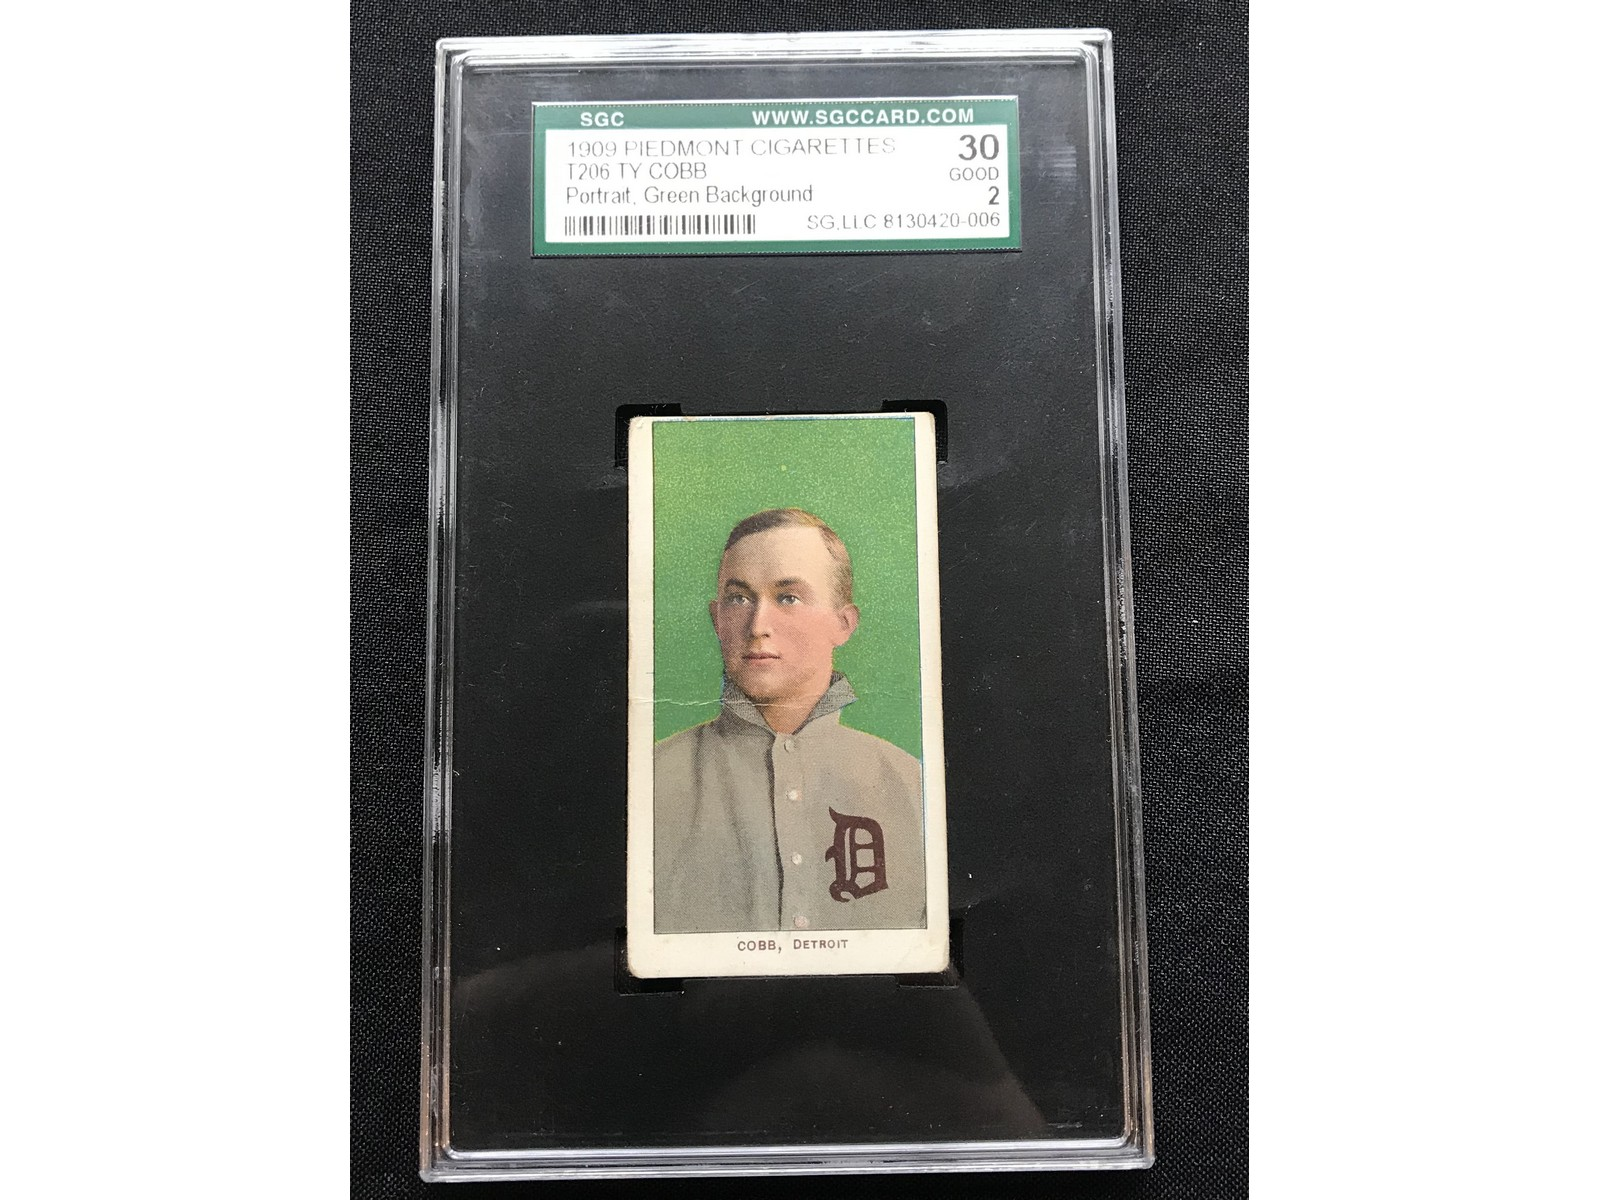 December 2 2019 Sports Cards and Memorabilia